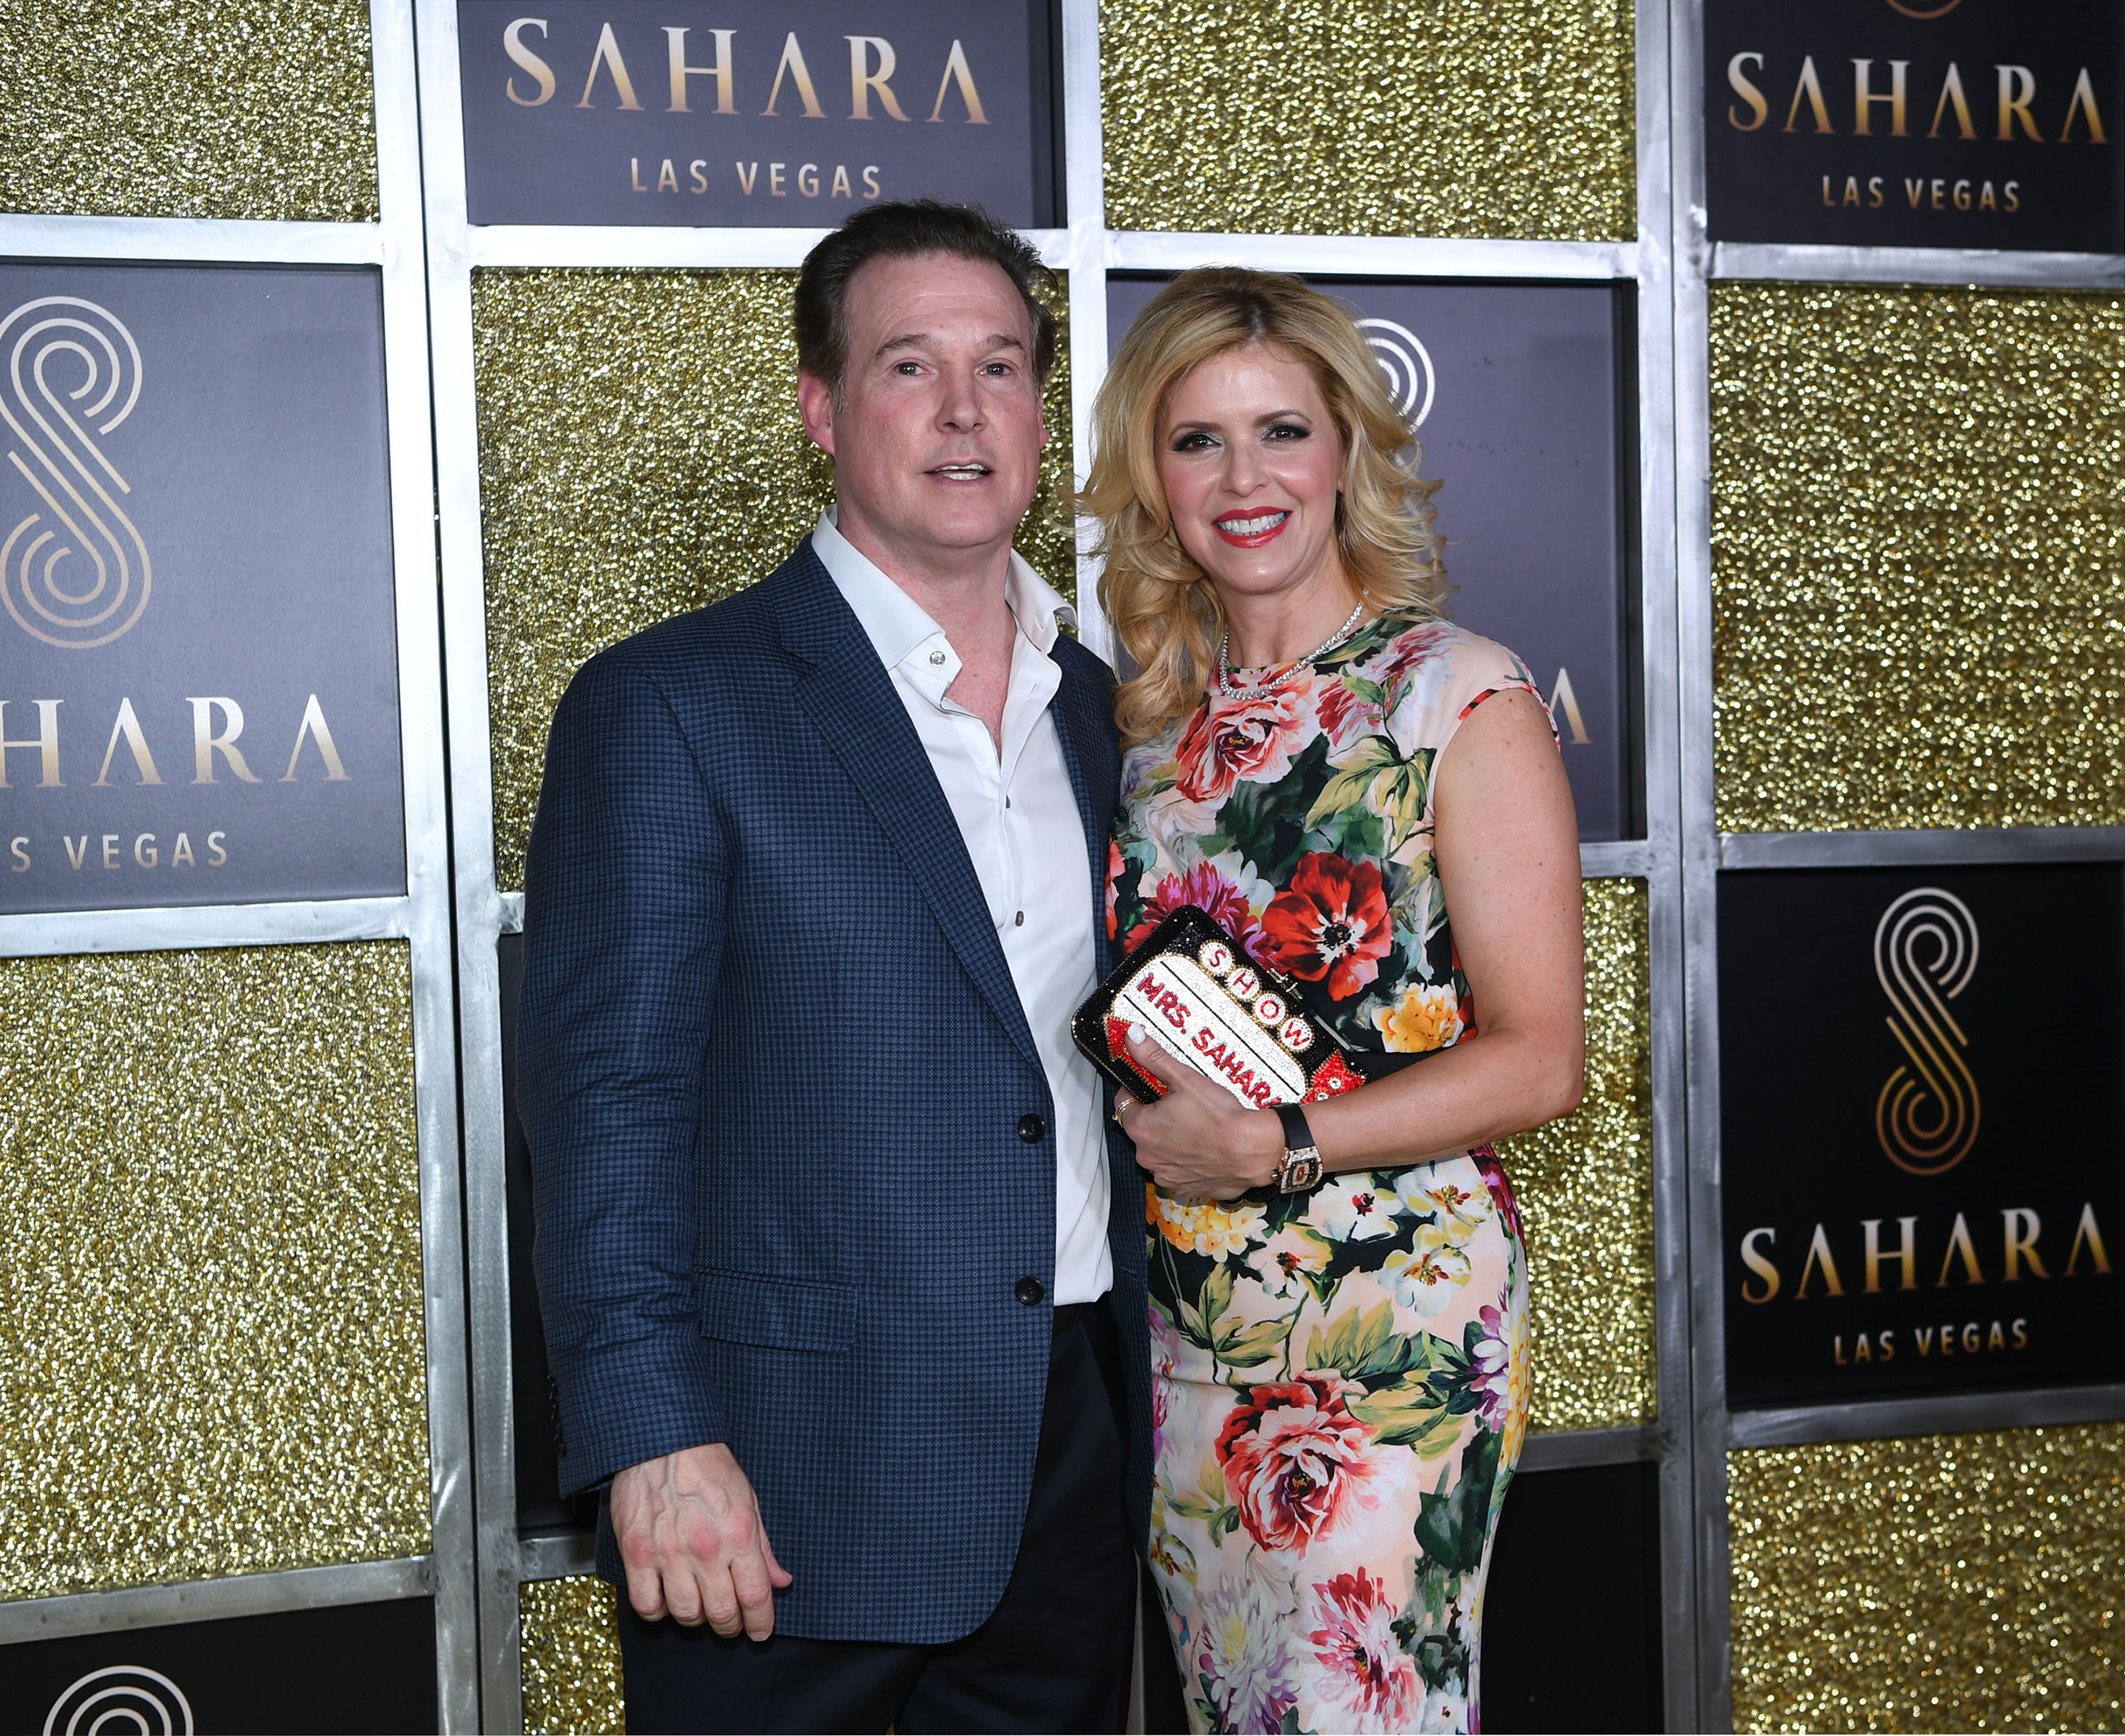 Alex Meruelo, owner of SAHARA Las Vegas, accompanied by his wife, Liset, stop for photos during an exclusive unveiling event of the new SAHARA Las Vegas.